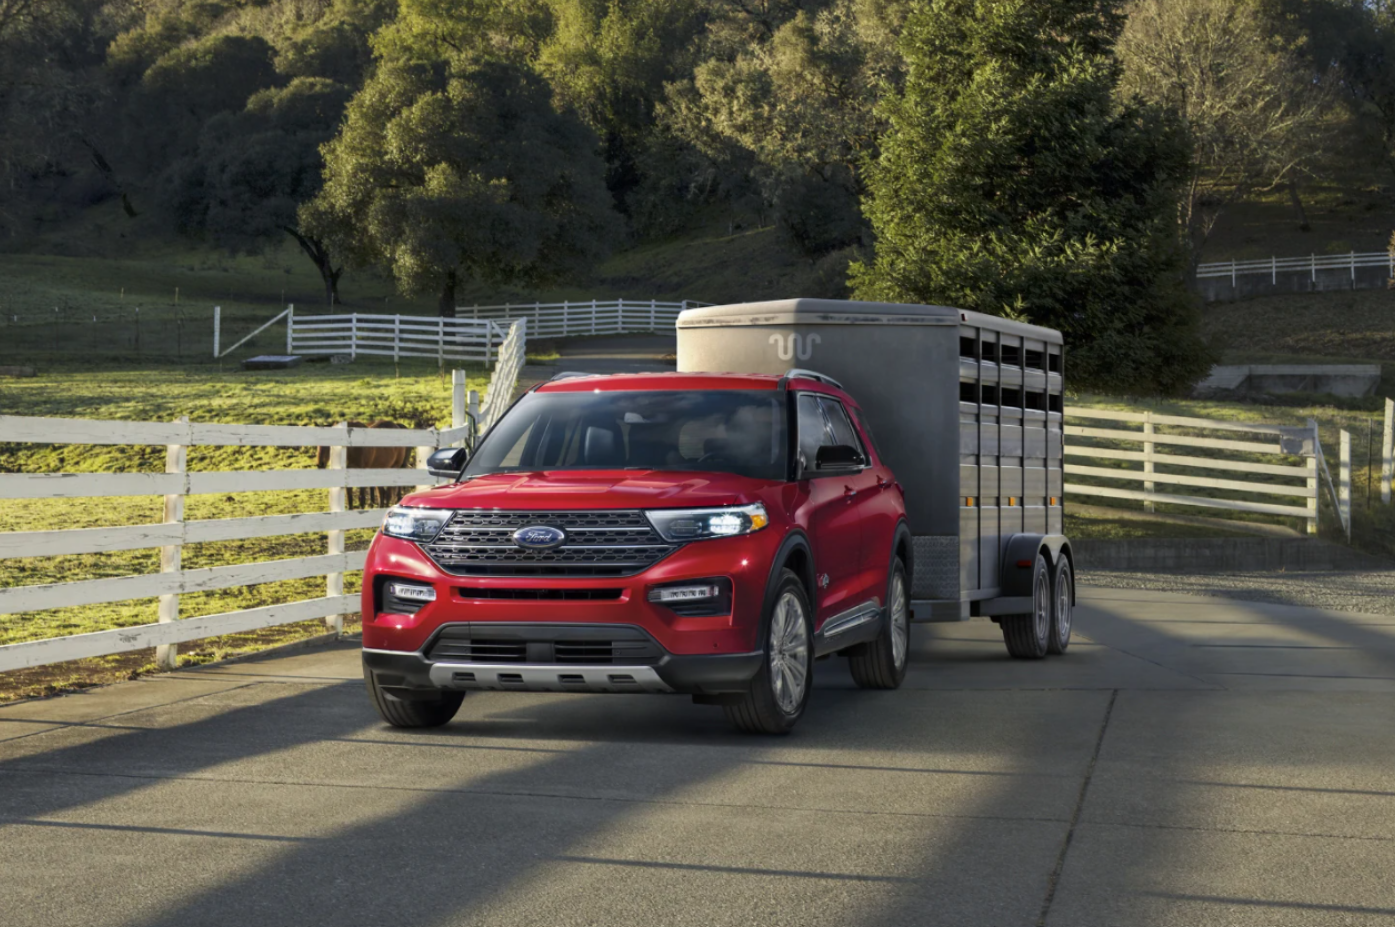 A red 2021 Ford Explorer pulling a horse trailer down the road at a local farm.